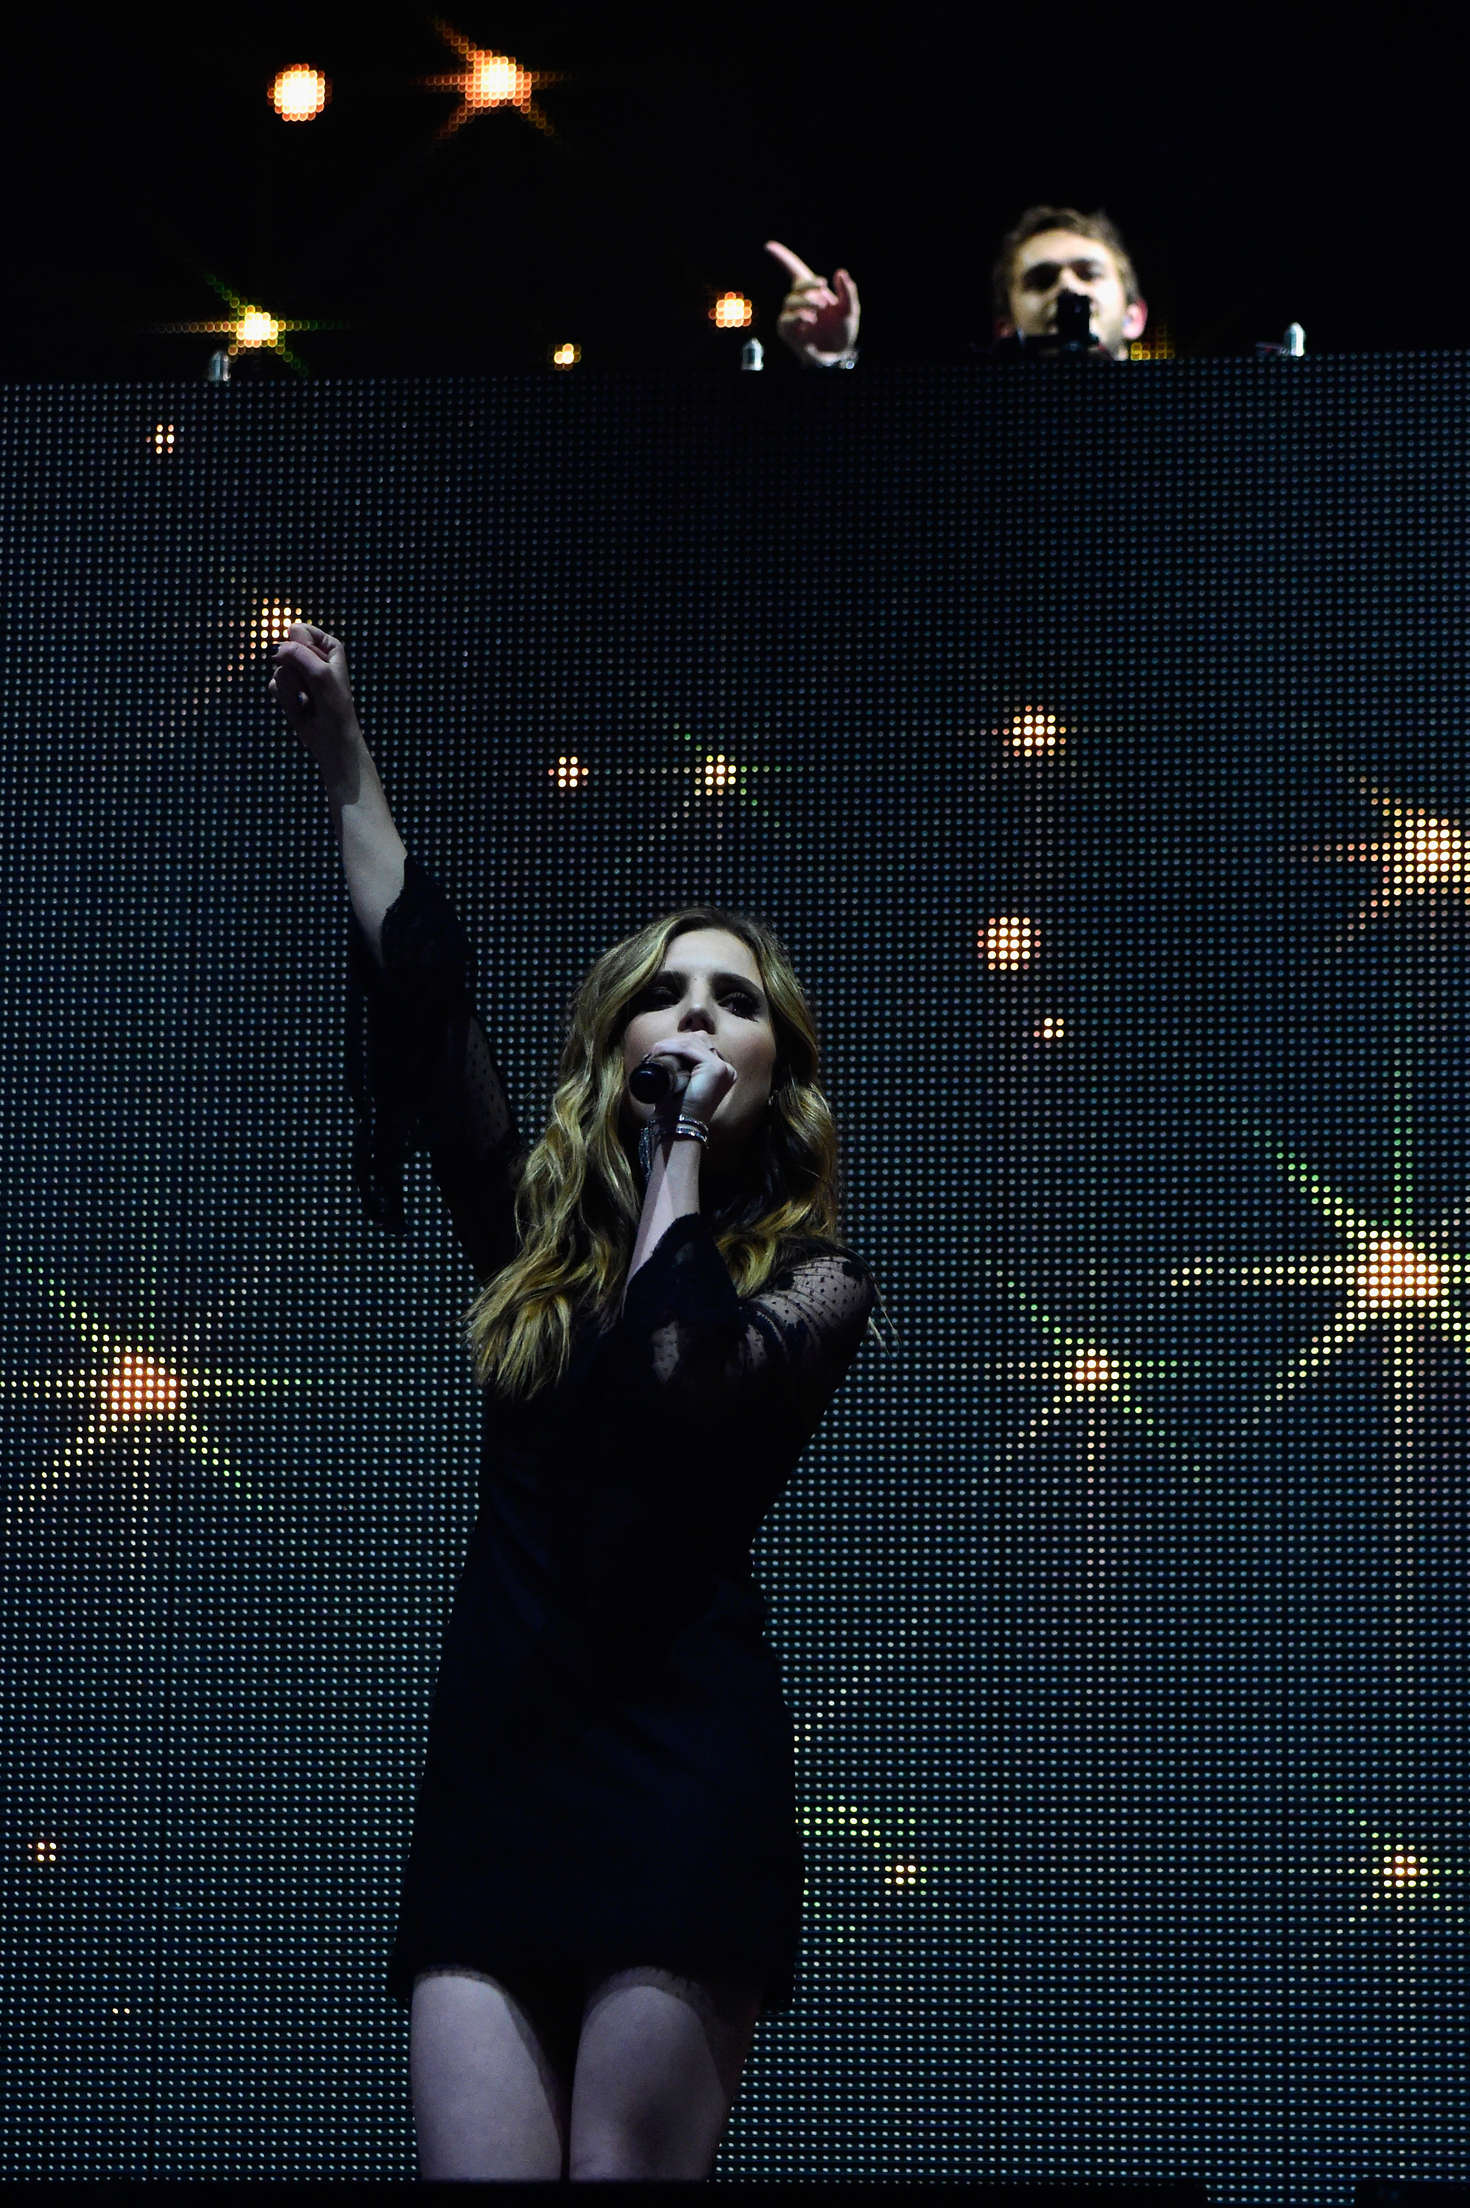 Sydney Sierota Performing at Coachella Valley Music and Arts Festival in Indio